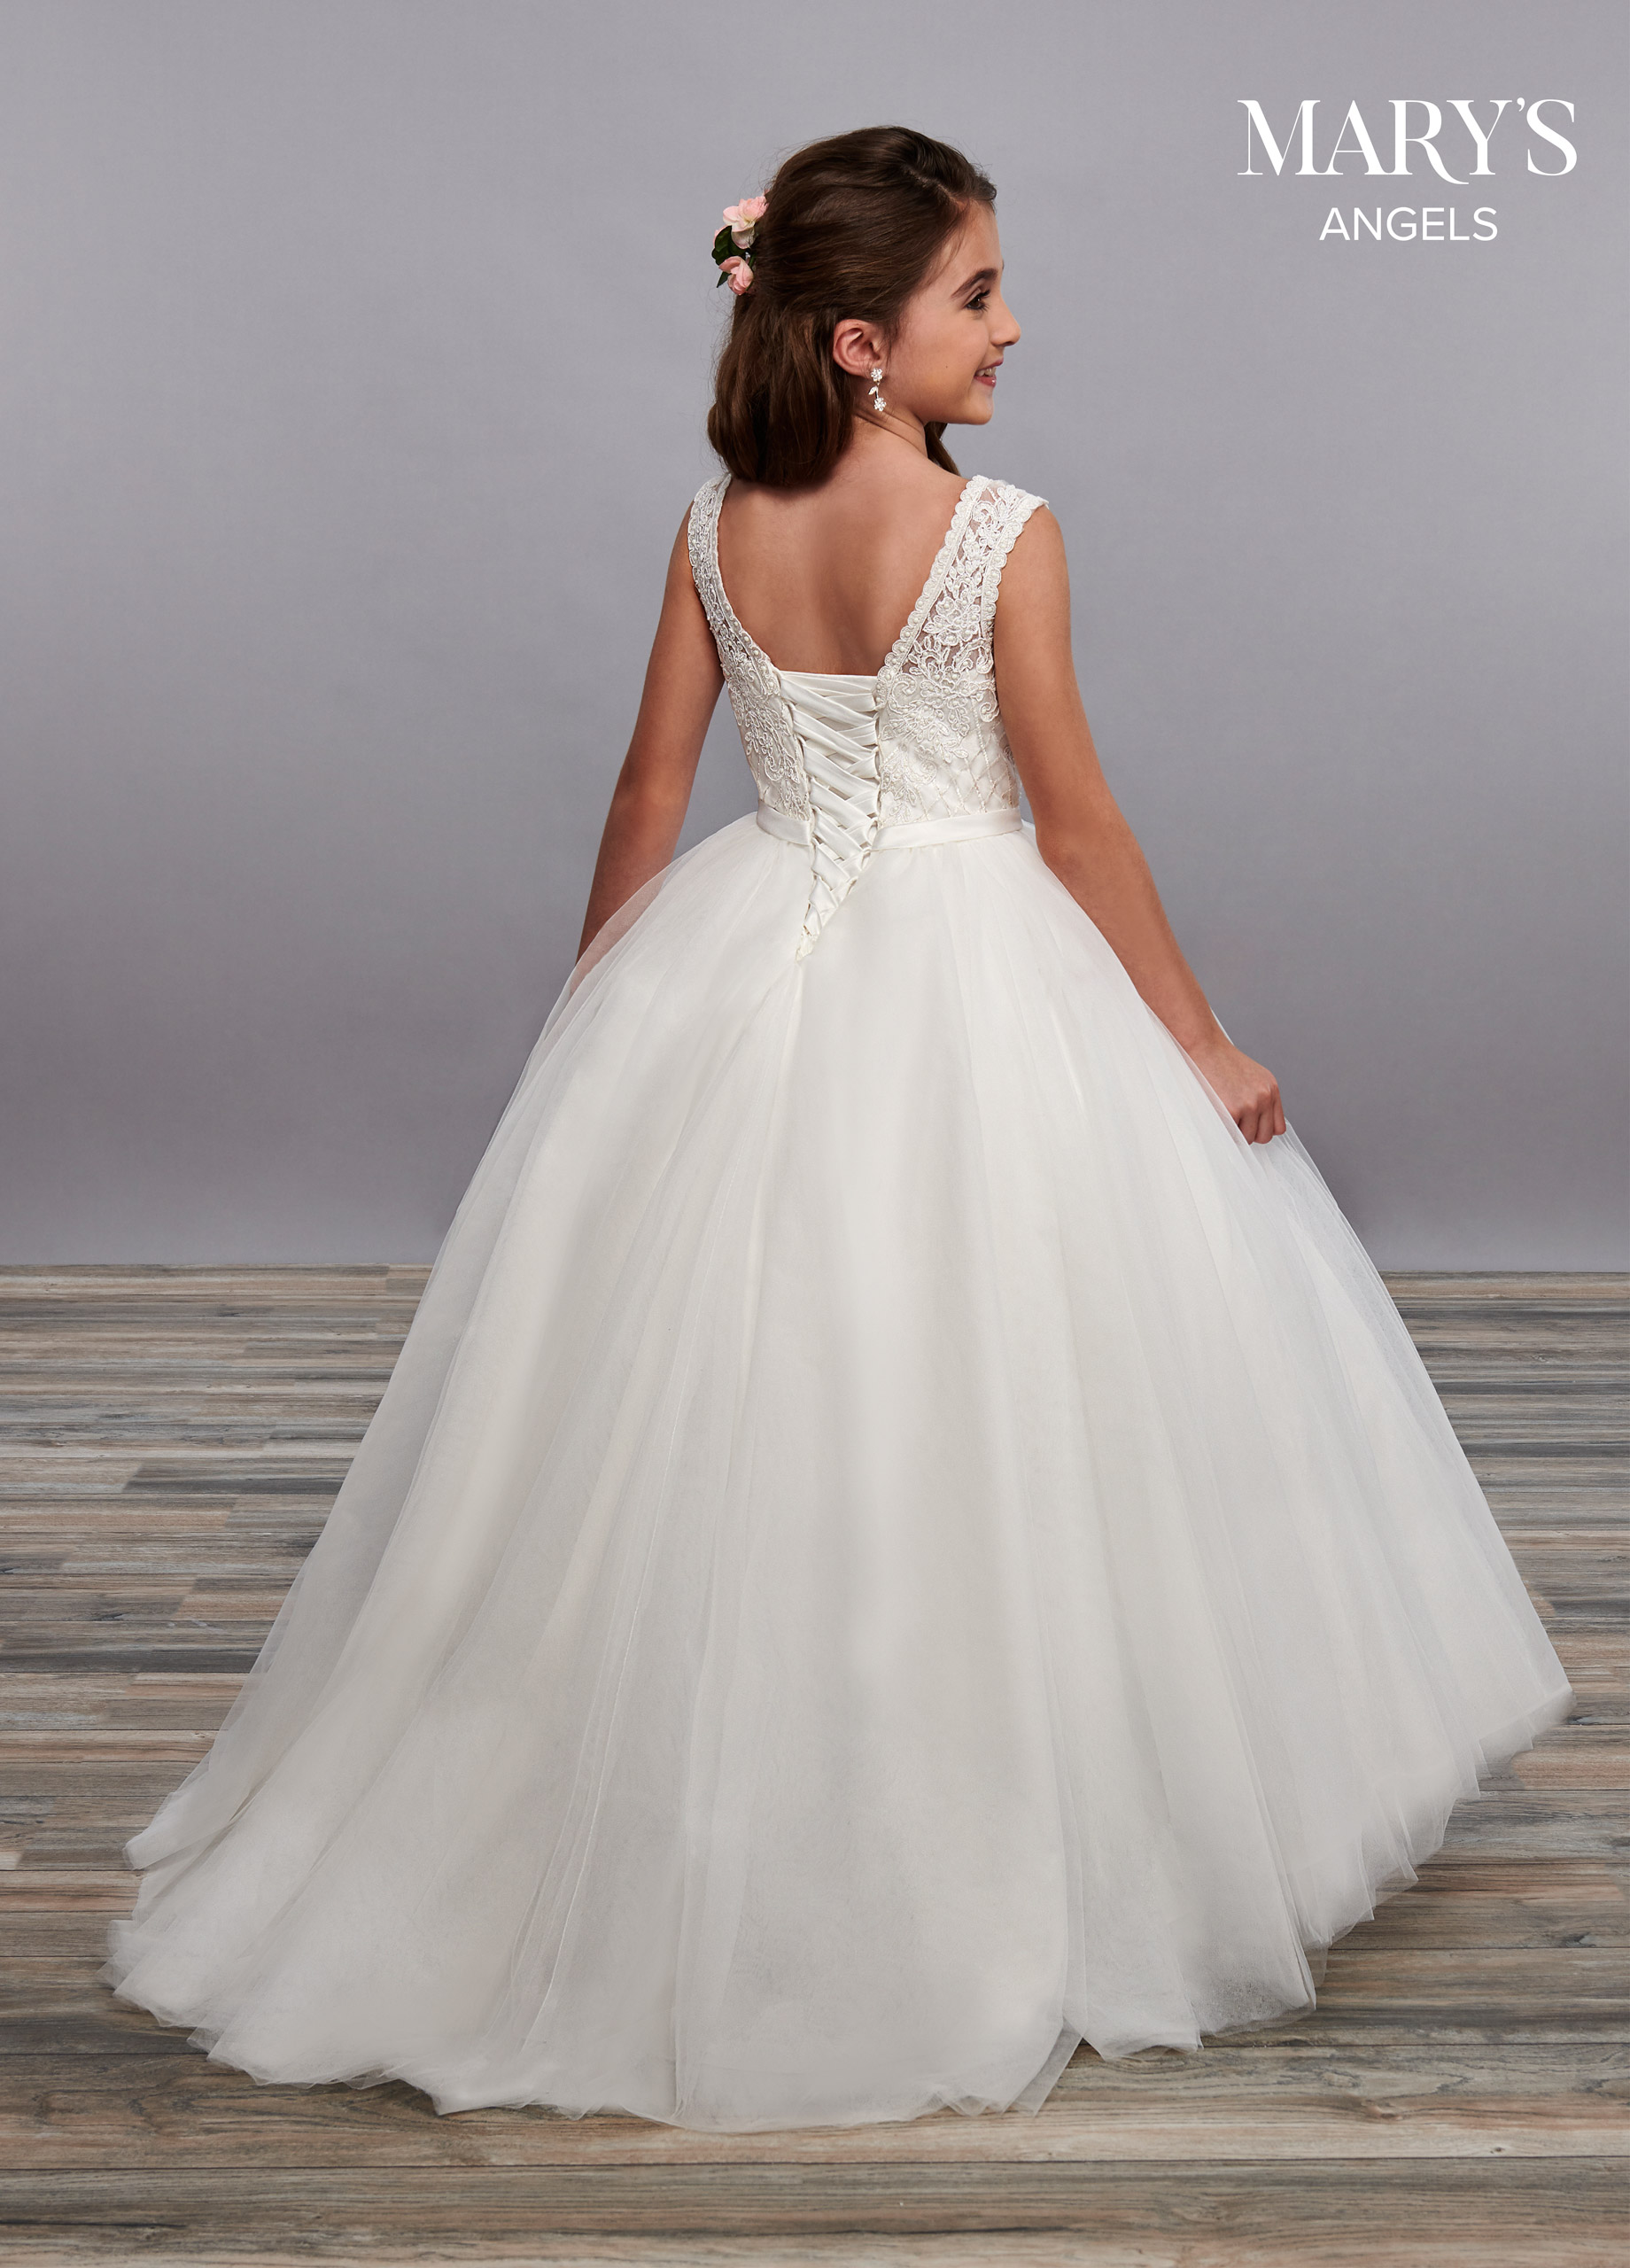 Angel Flower Girl Dresses   Mary's Angels   Style - MB9061